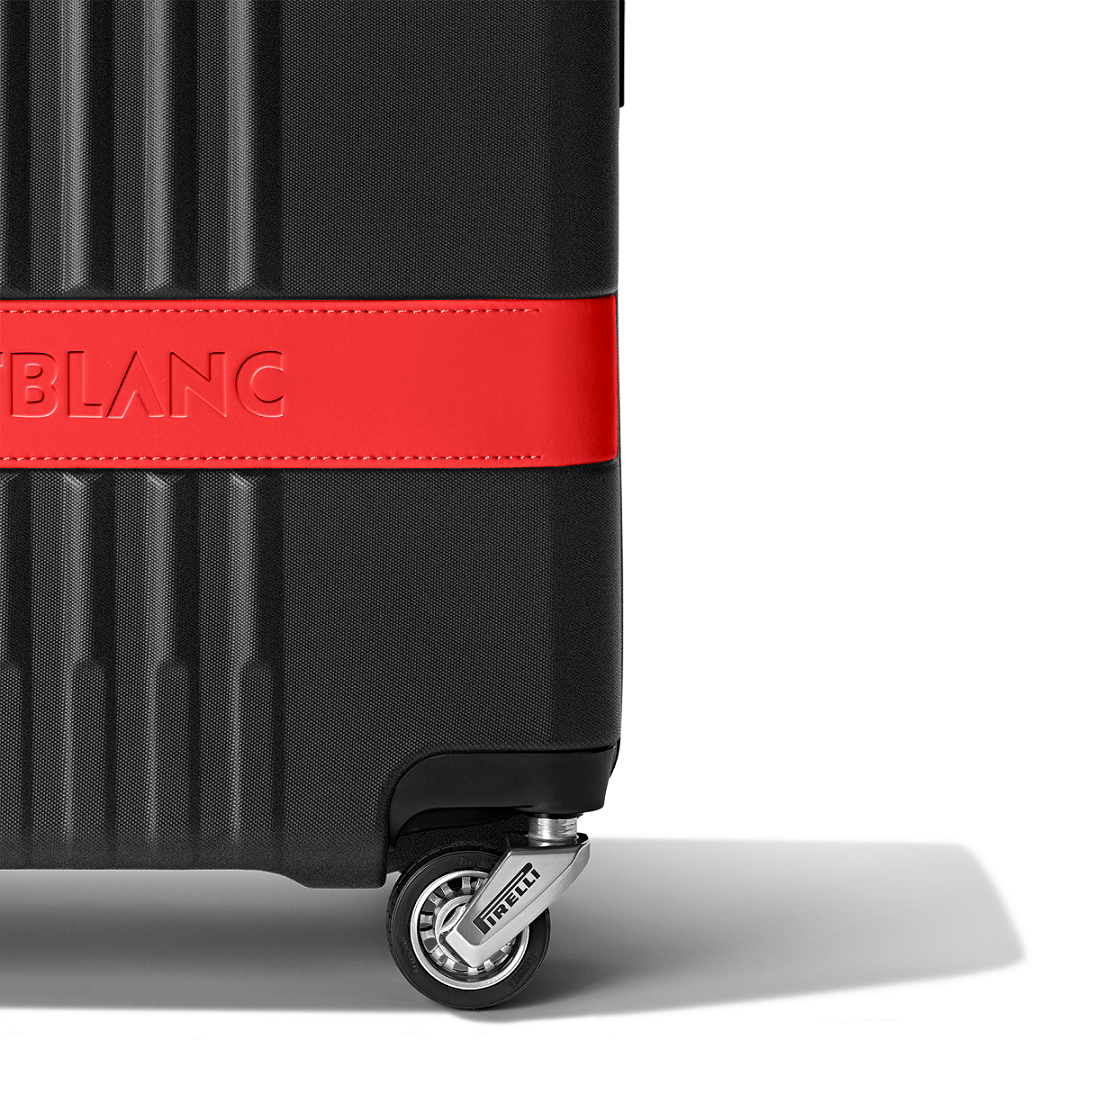 Pirelli extends partnership with Montblanc